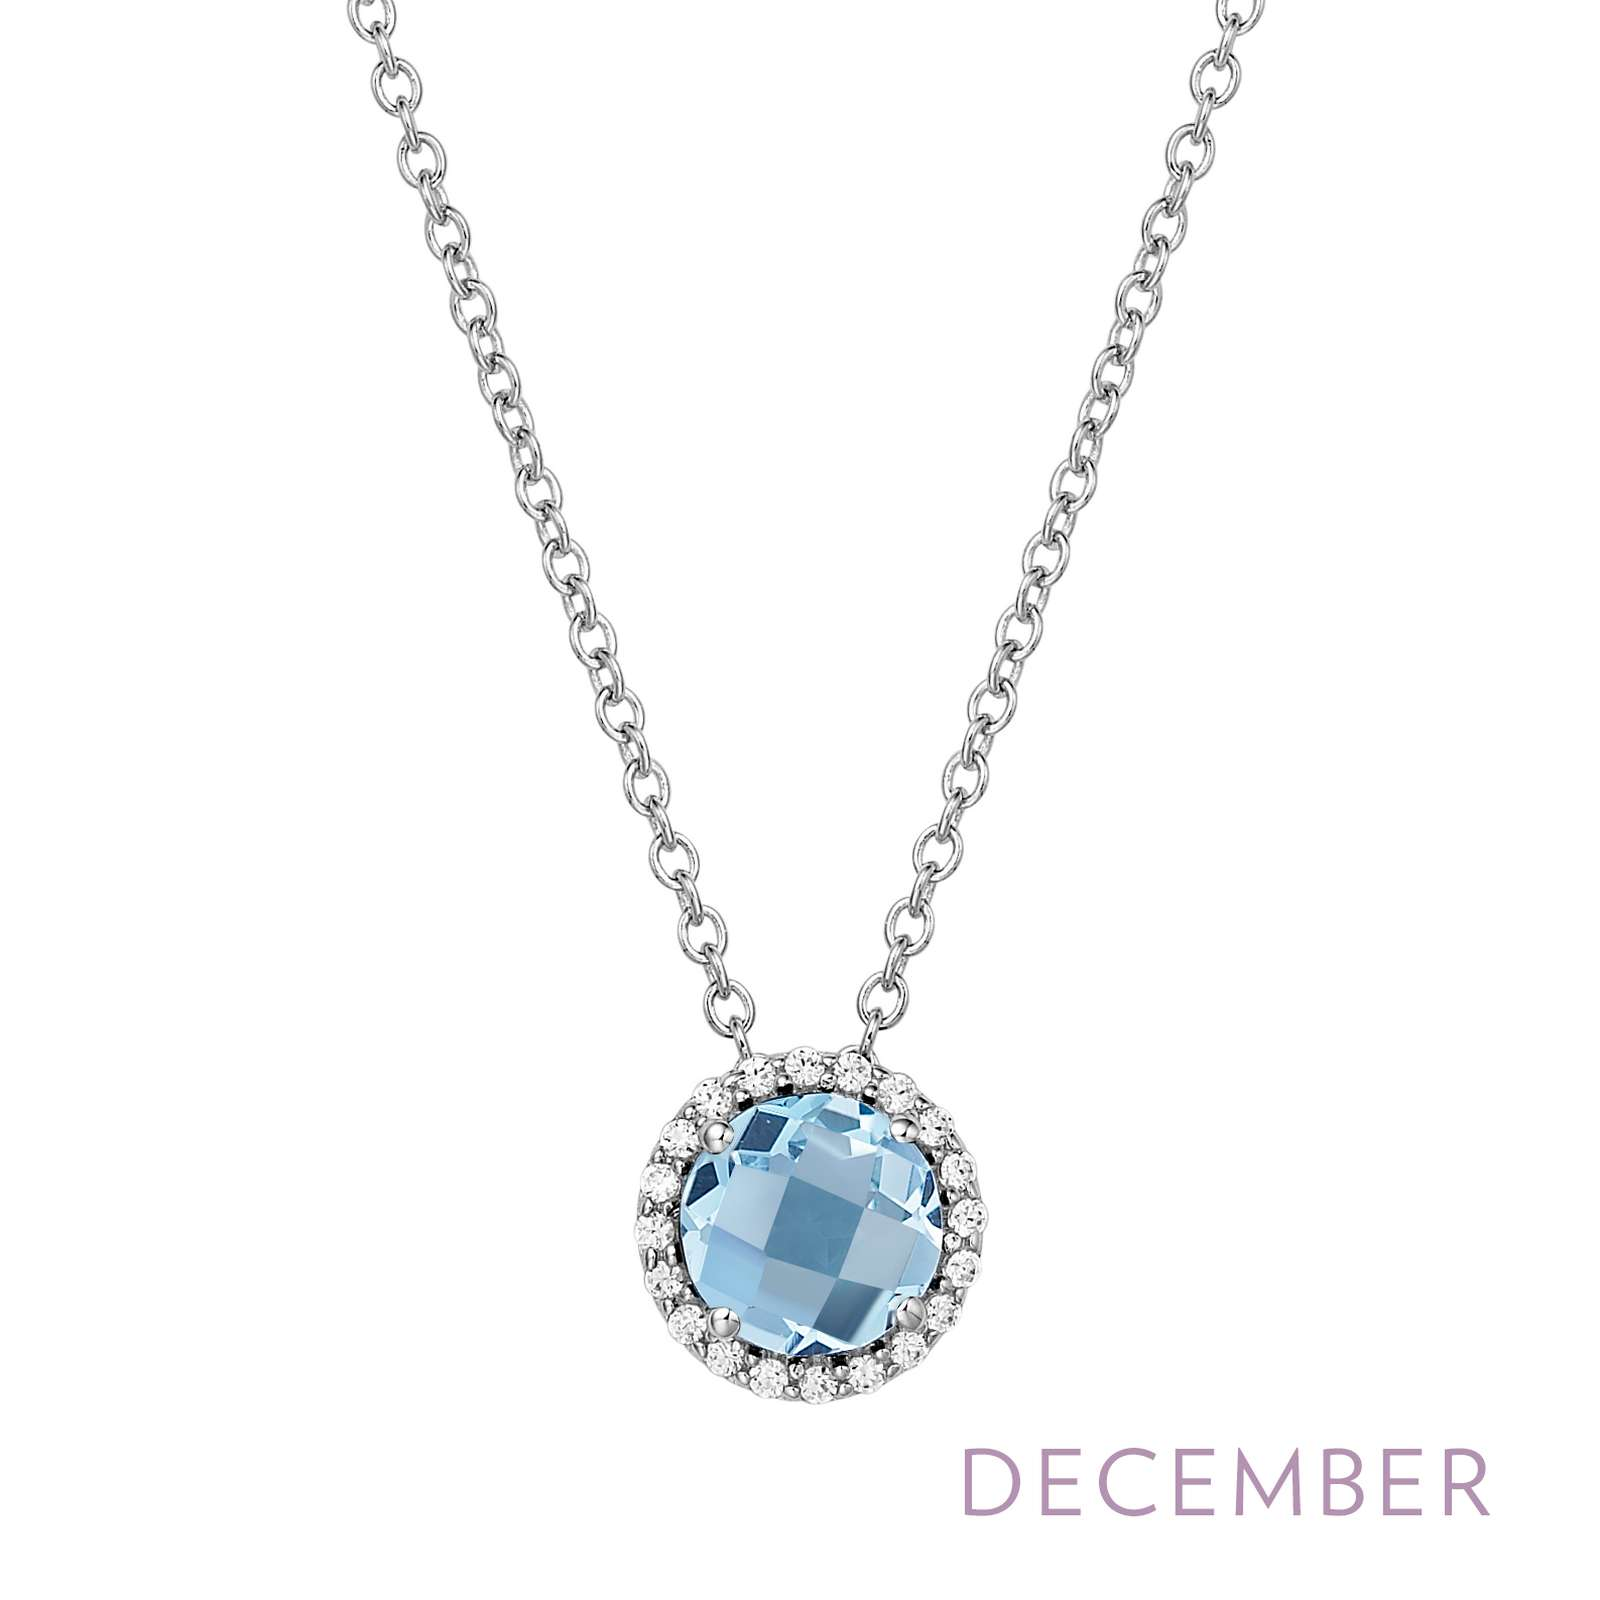 December - Blue Topaz.  Adorn yourself with Lafonn's birthstone jewelry. The necklace is set with a genuine blue topaz surrounded by Lafonn's signature Lassaire simulated diamonds in sterling silver bonded with platinum.